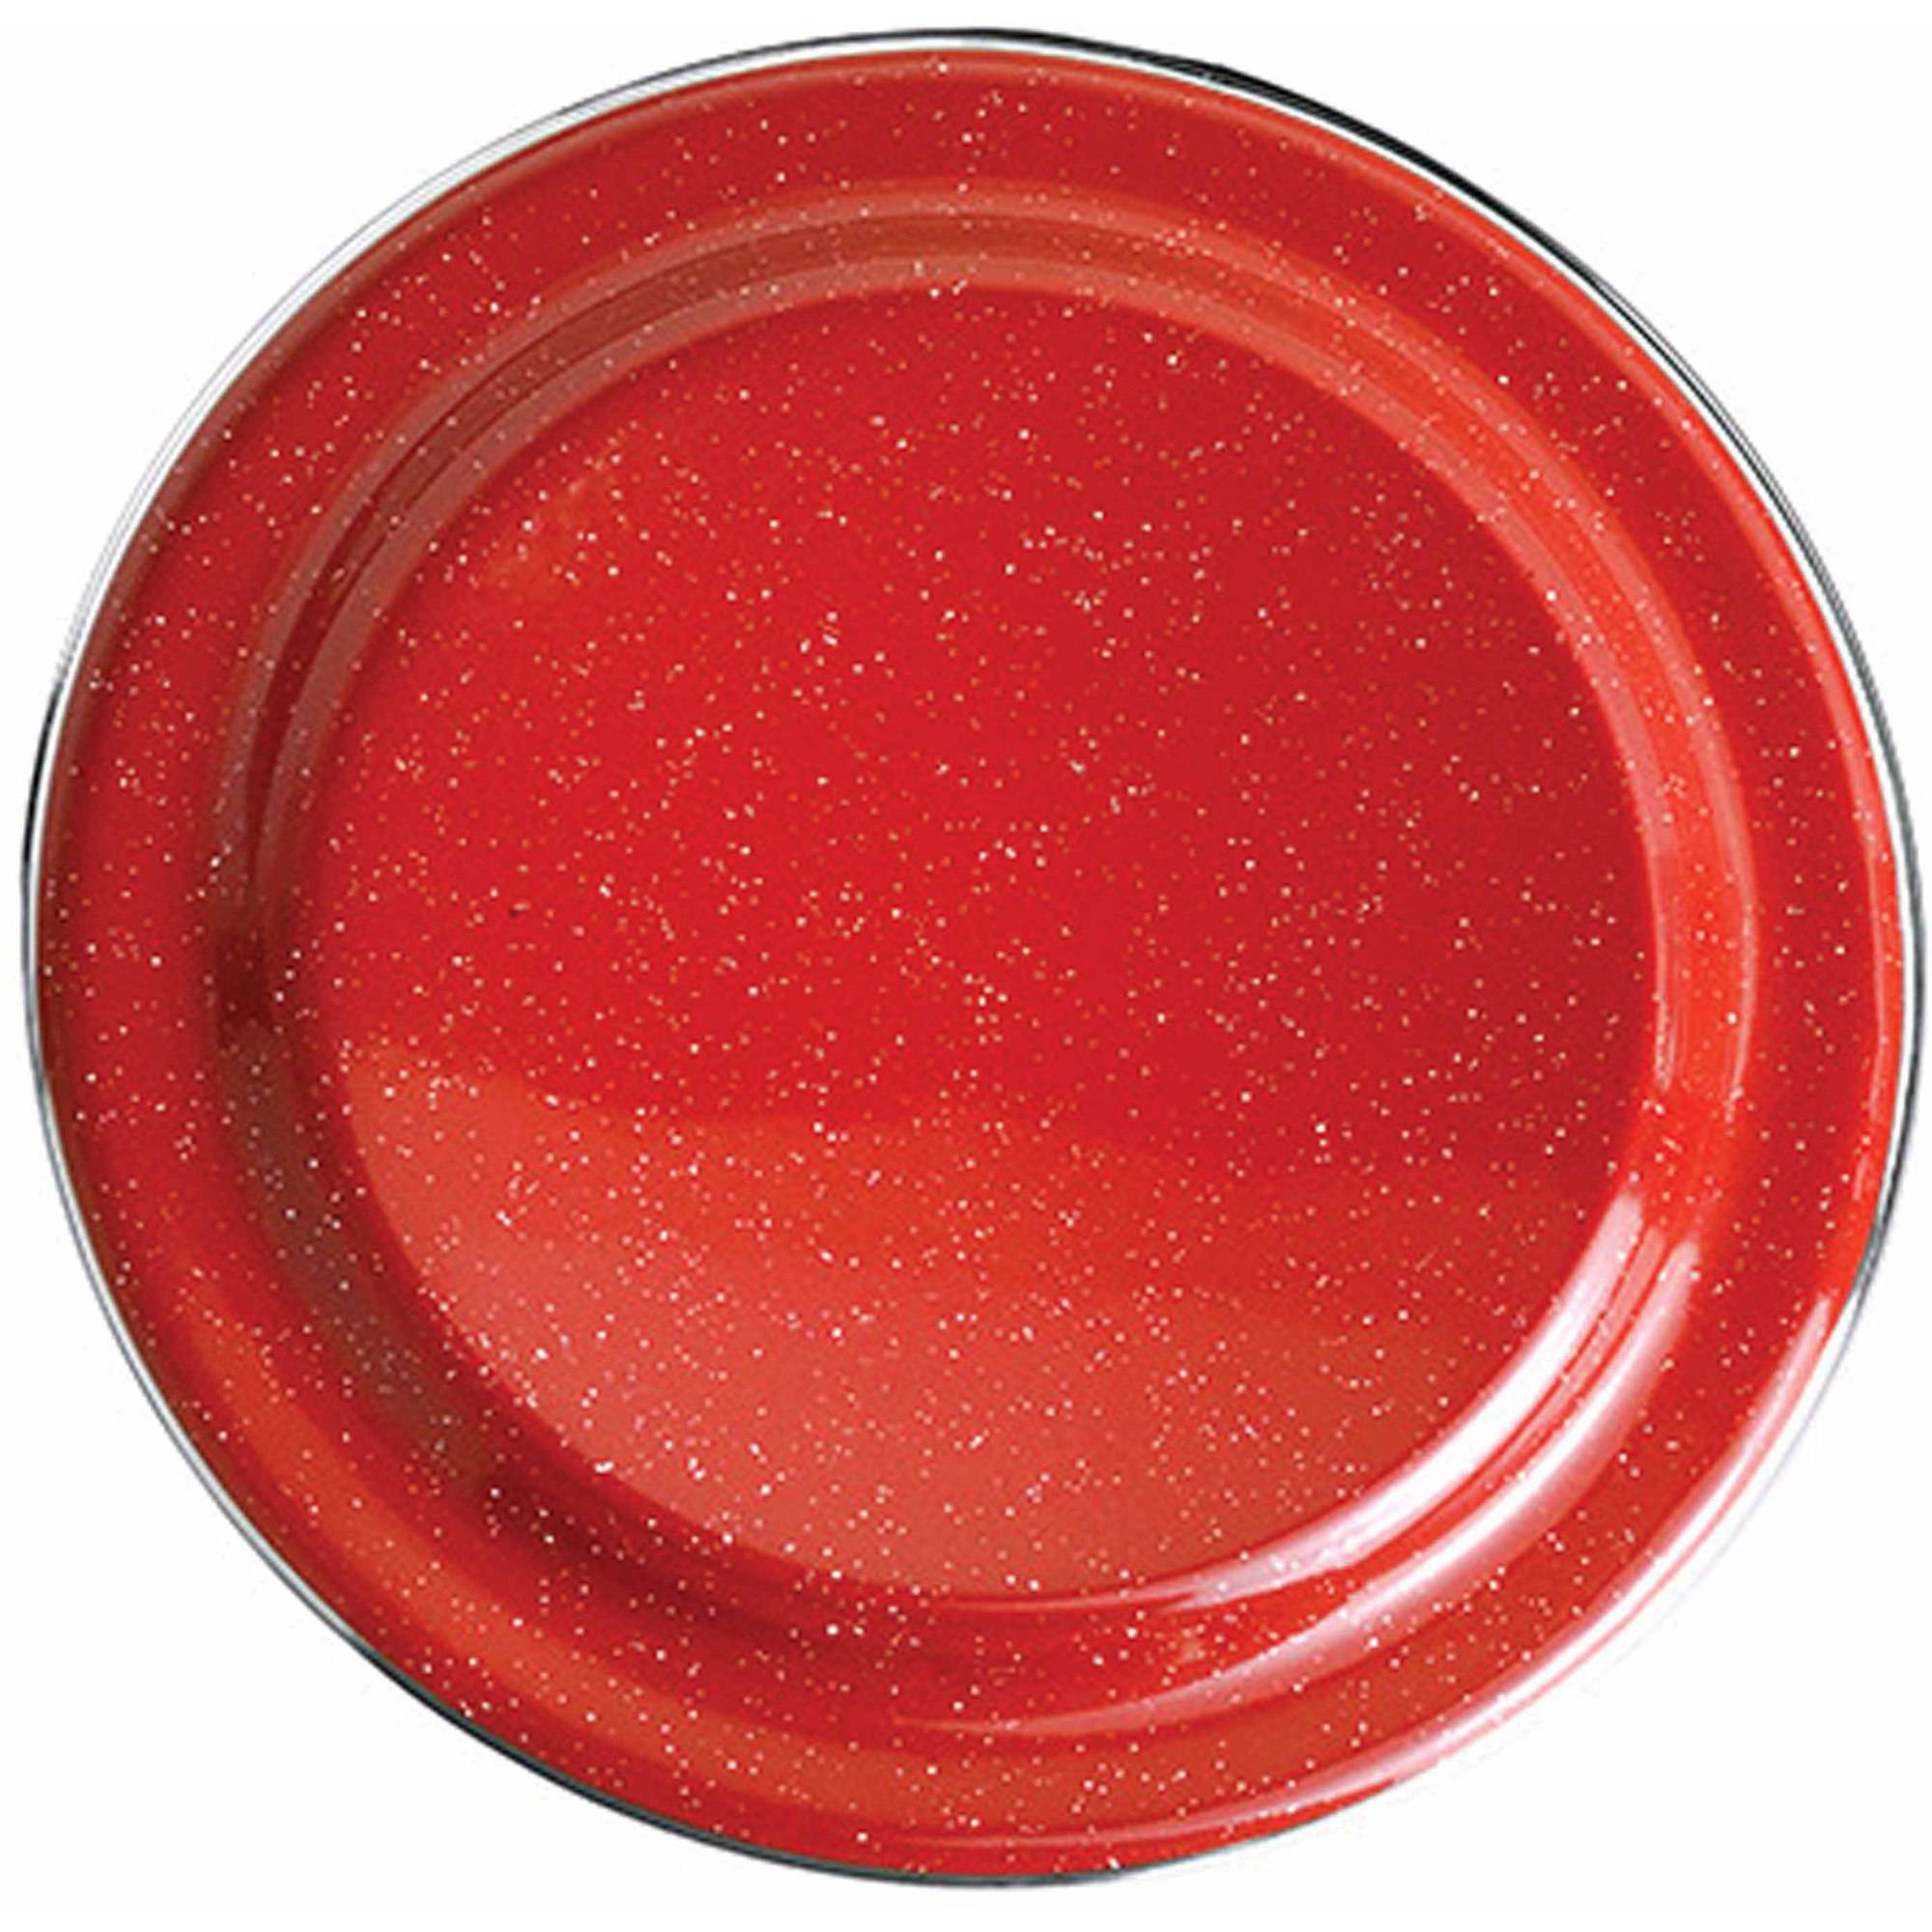 GSI Outdoors Stainless Steel Rim Enamelware Plate, Red